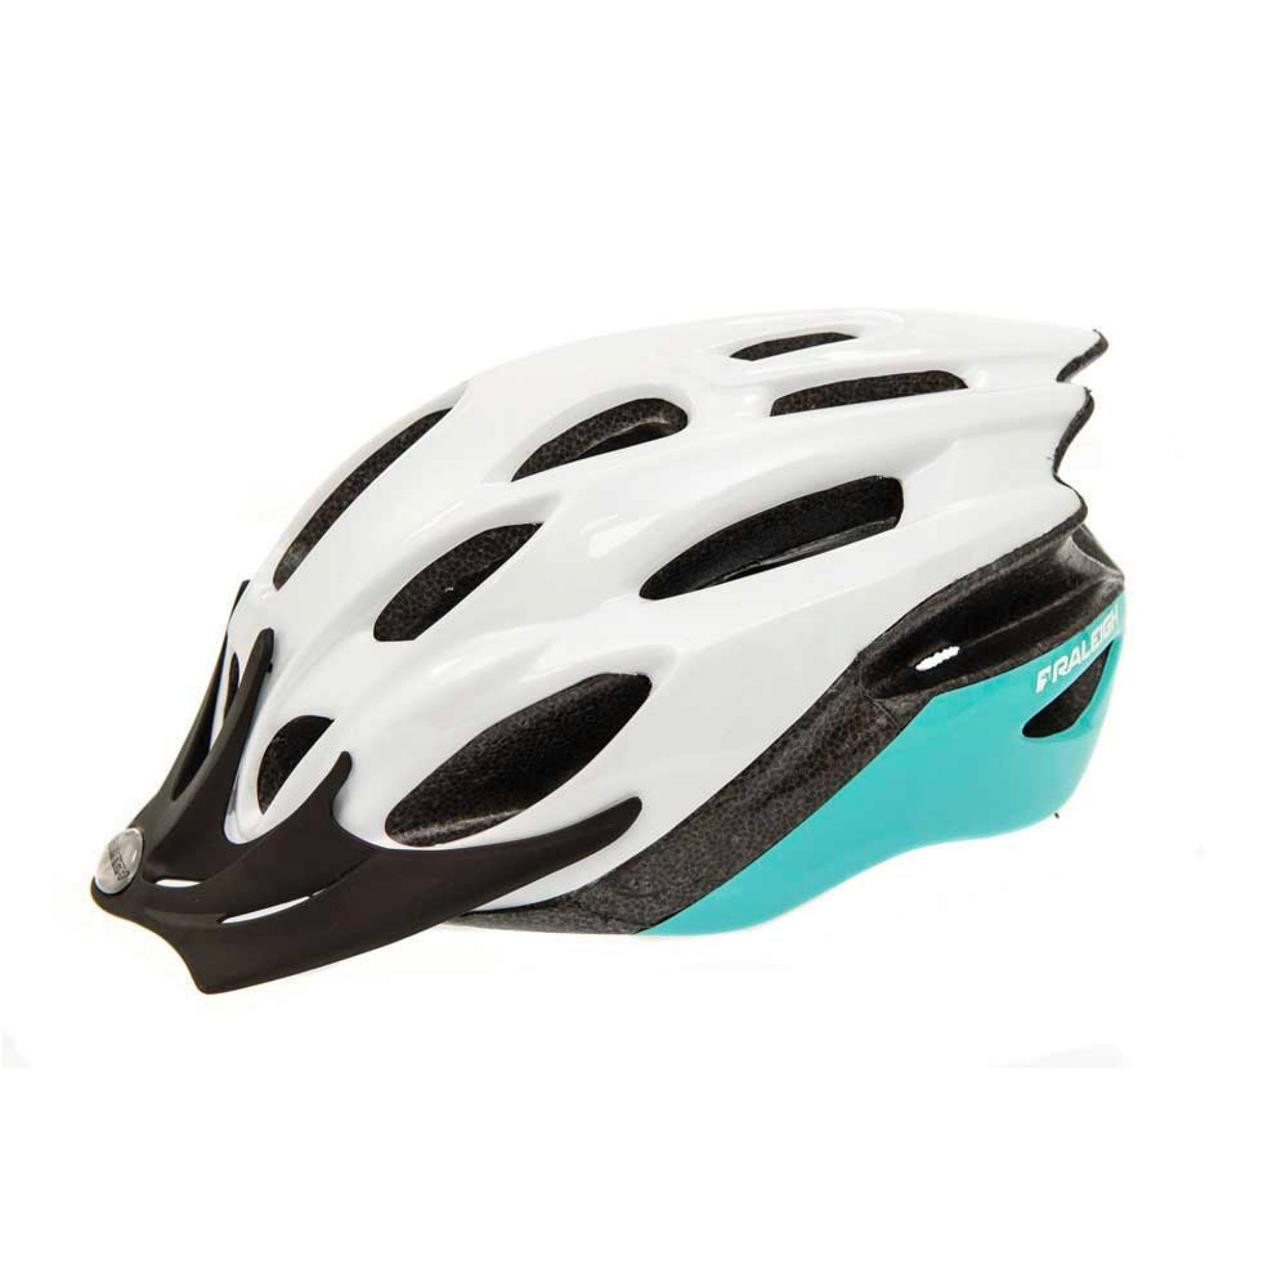 Raleigh Mission Evo Cycle Helmet (White and Green, 58-62cm)